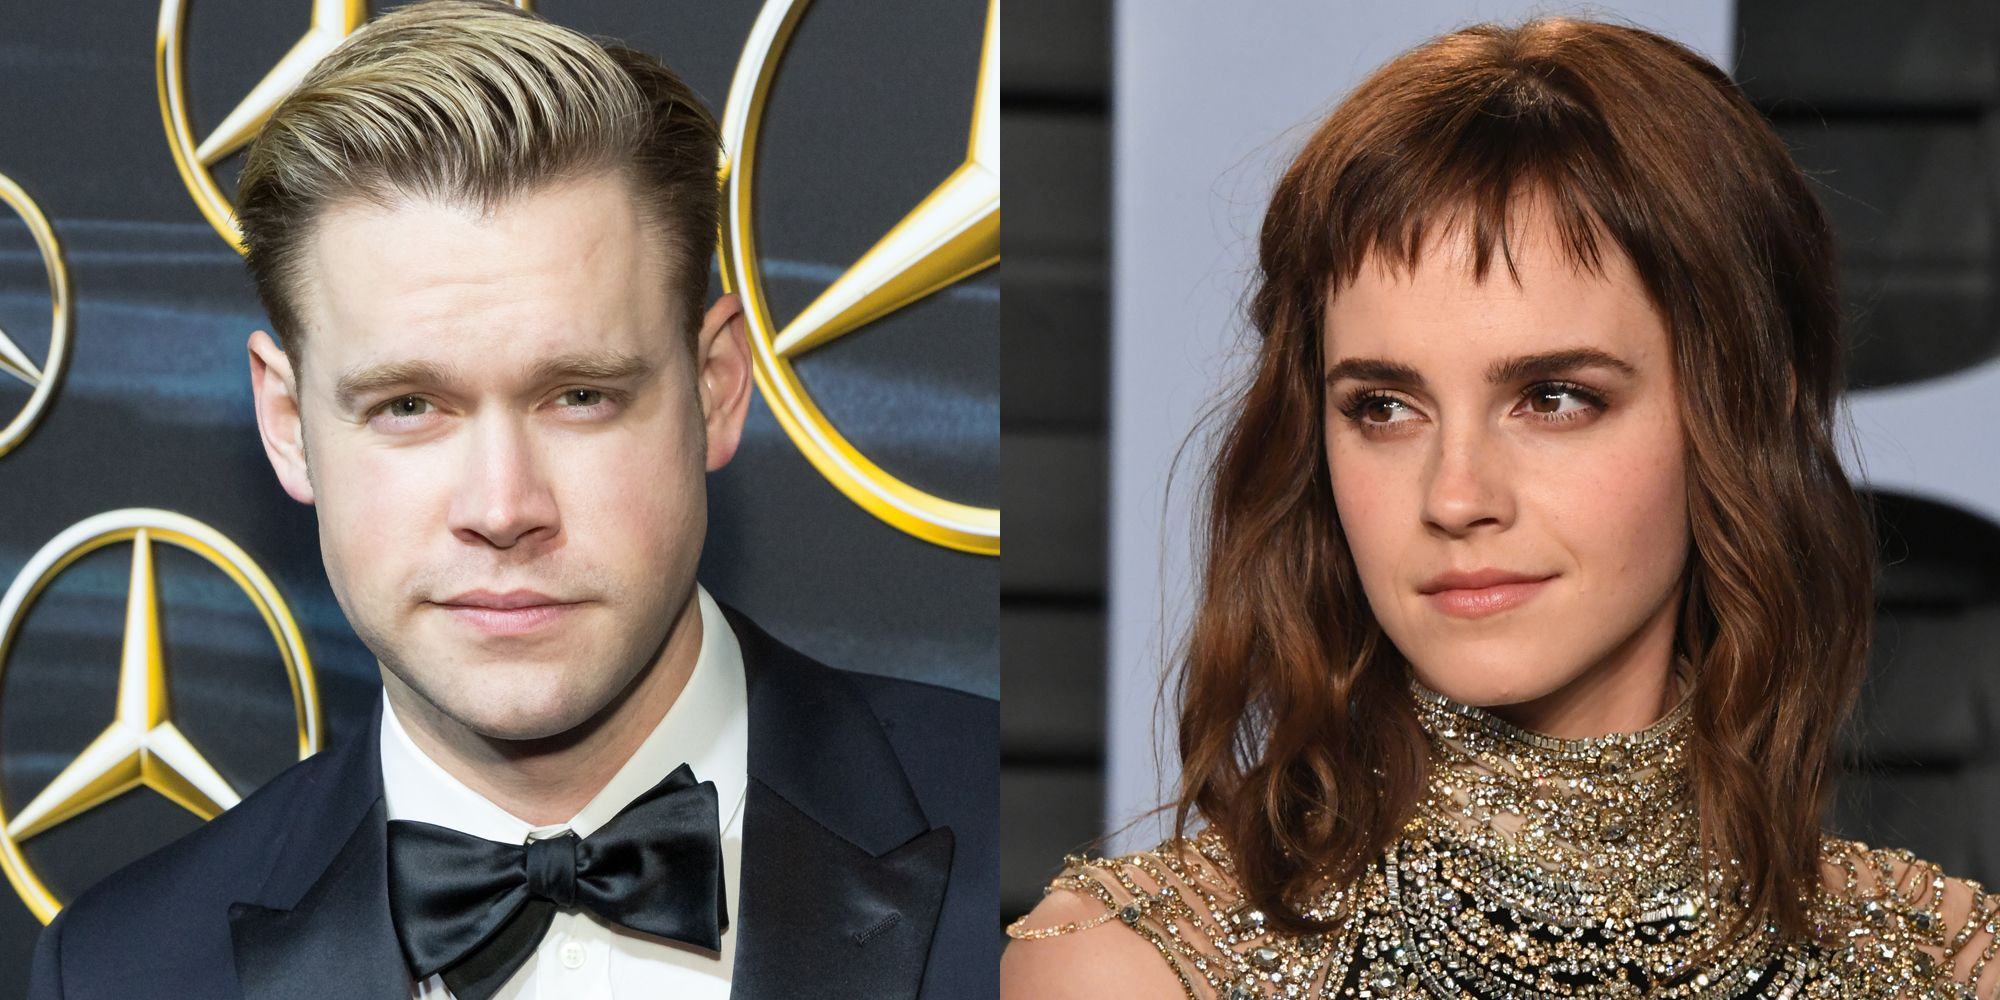 Chord Overstreet and Emma Watson